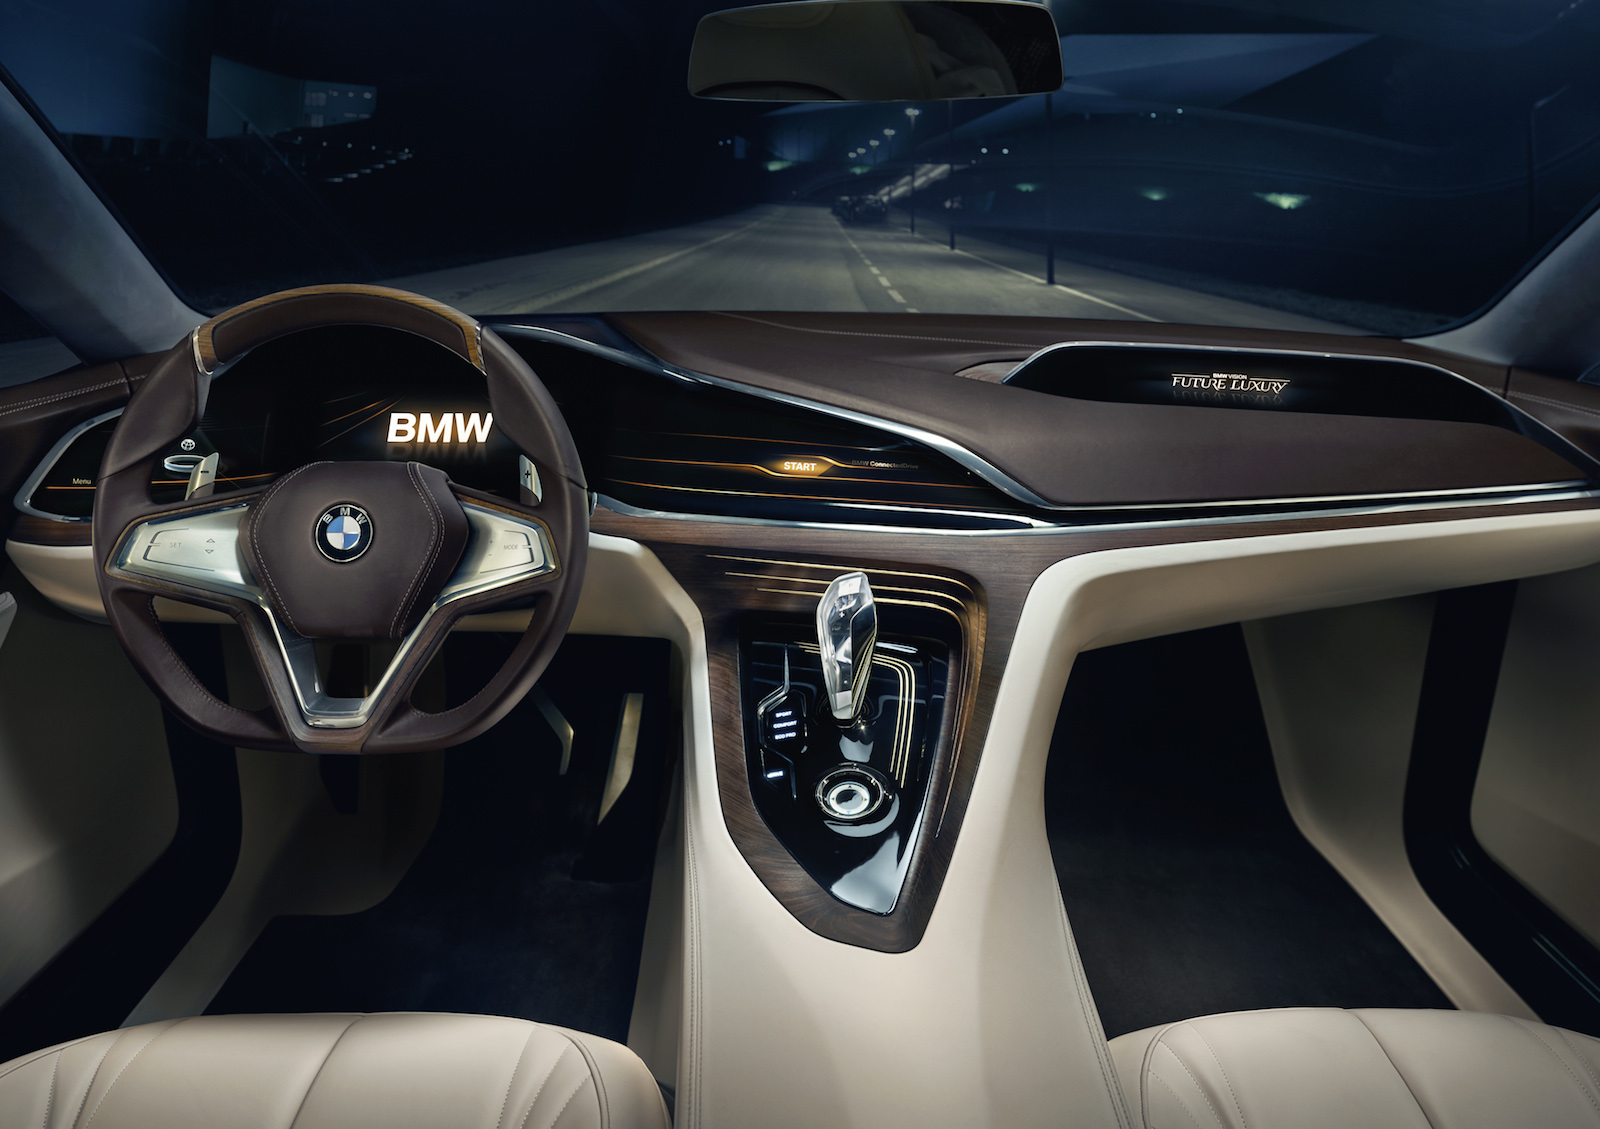 bmw-vision-future-luxury_100475104_h